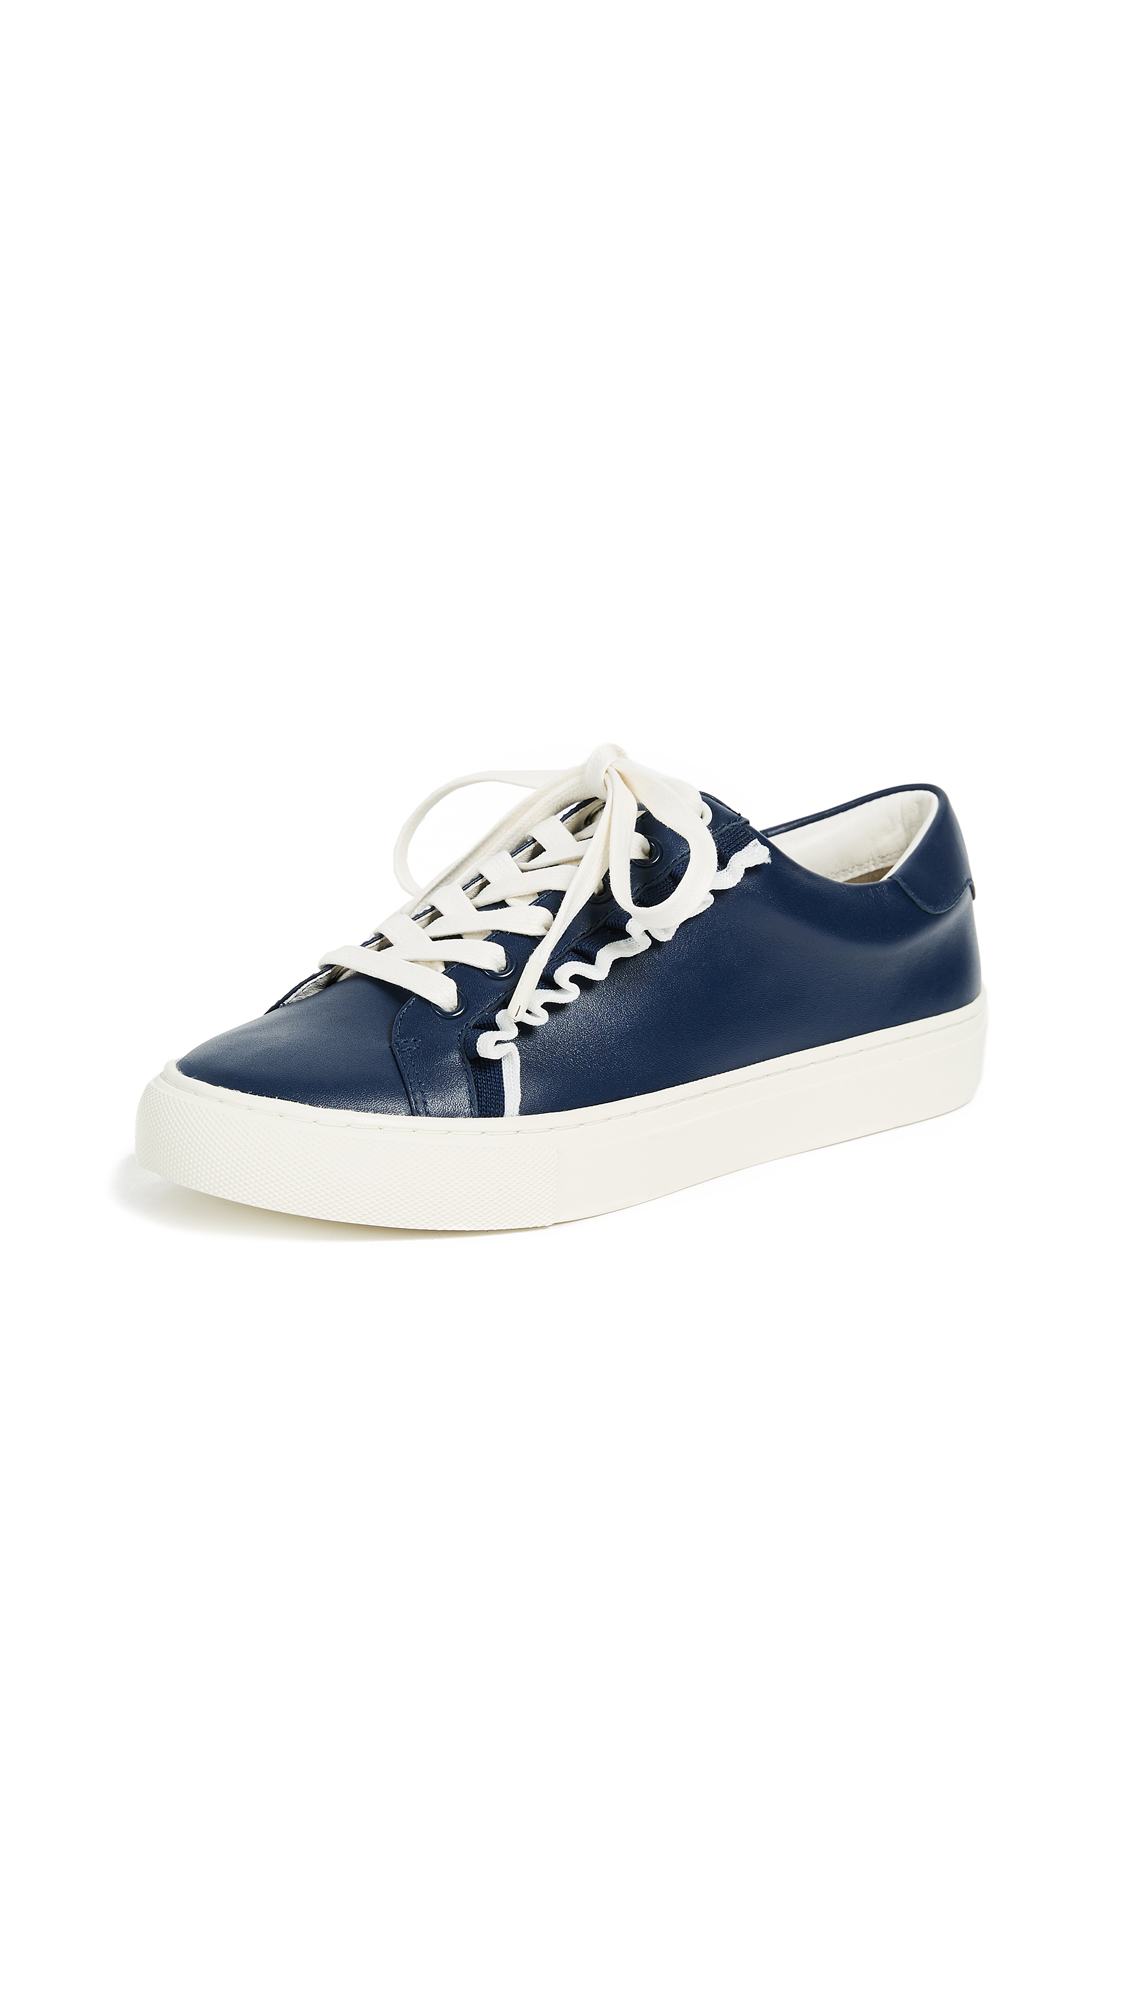 Tory Sport Ruffle Sneakers - Navy Sea/Snow White